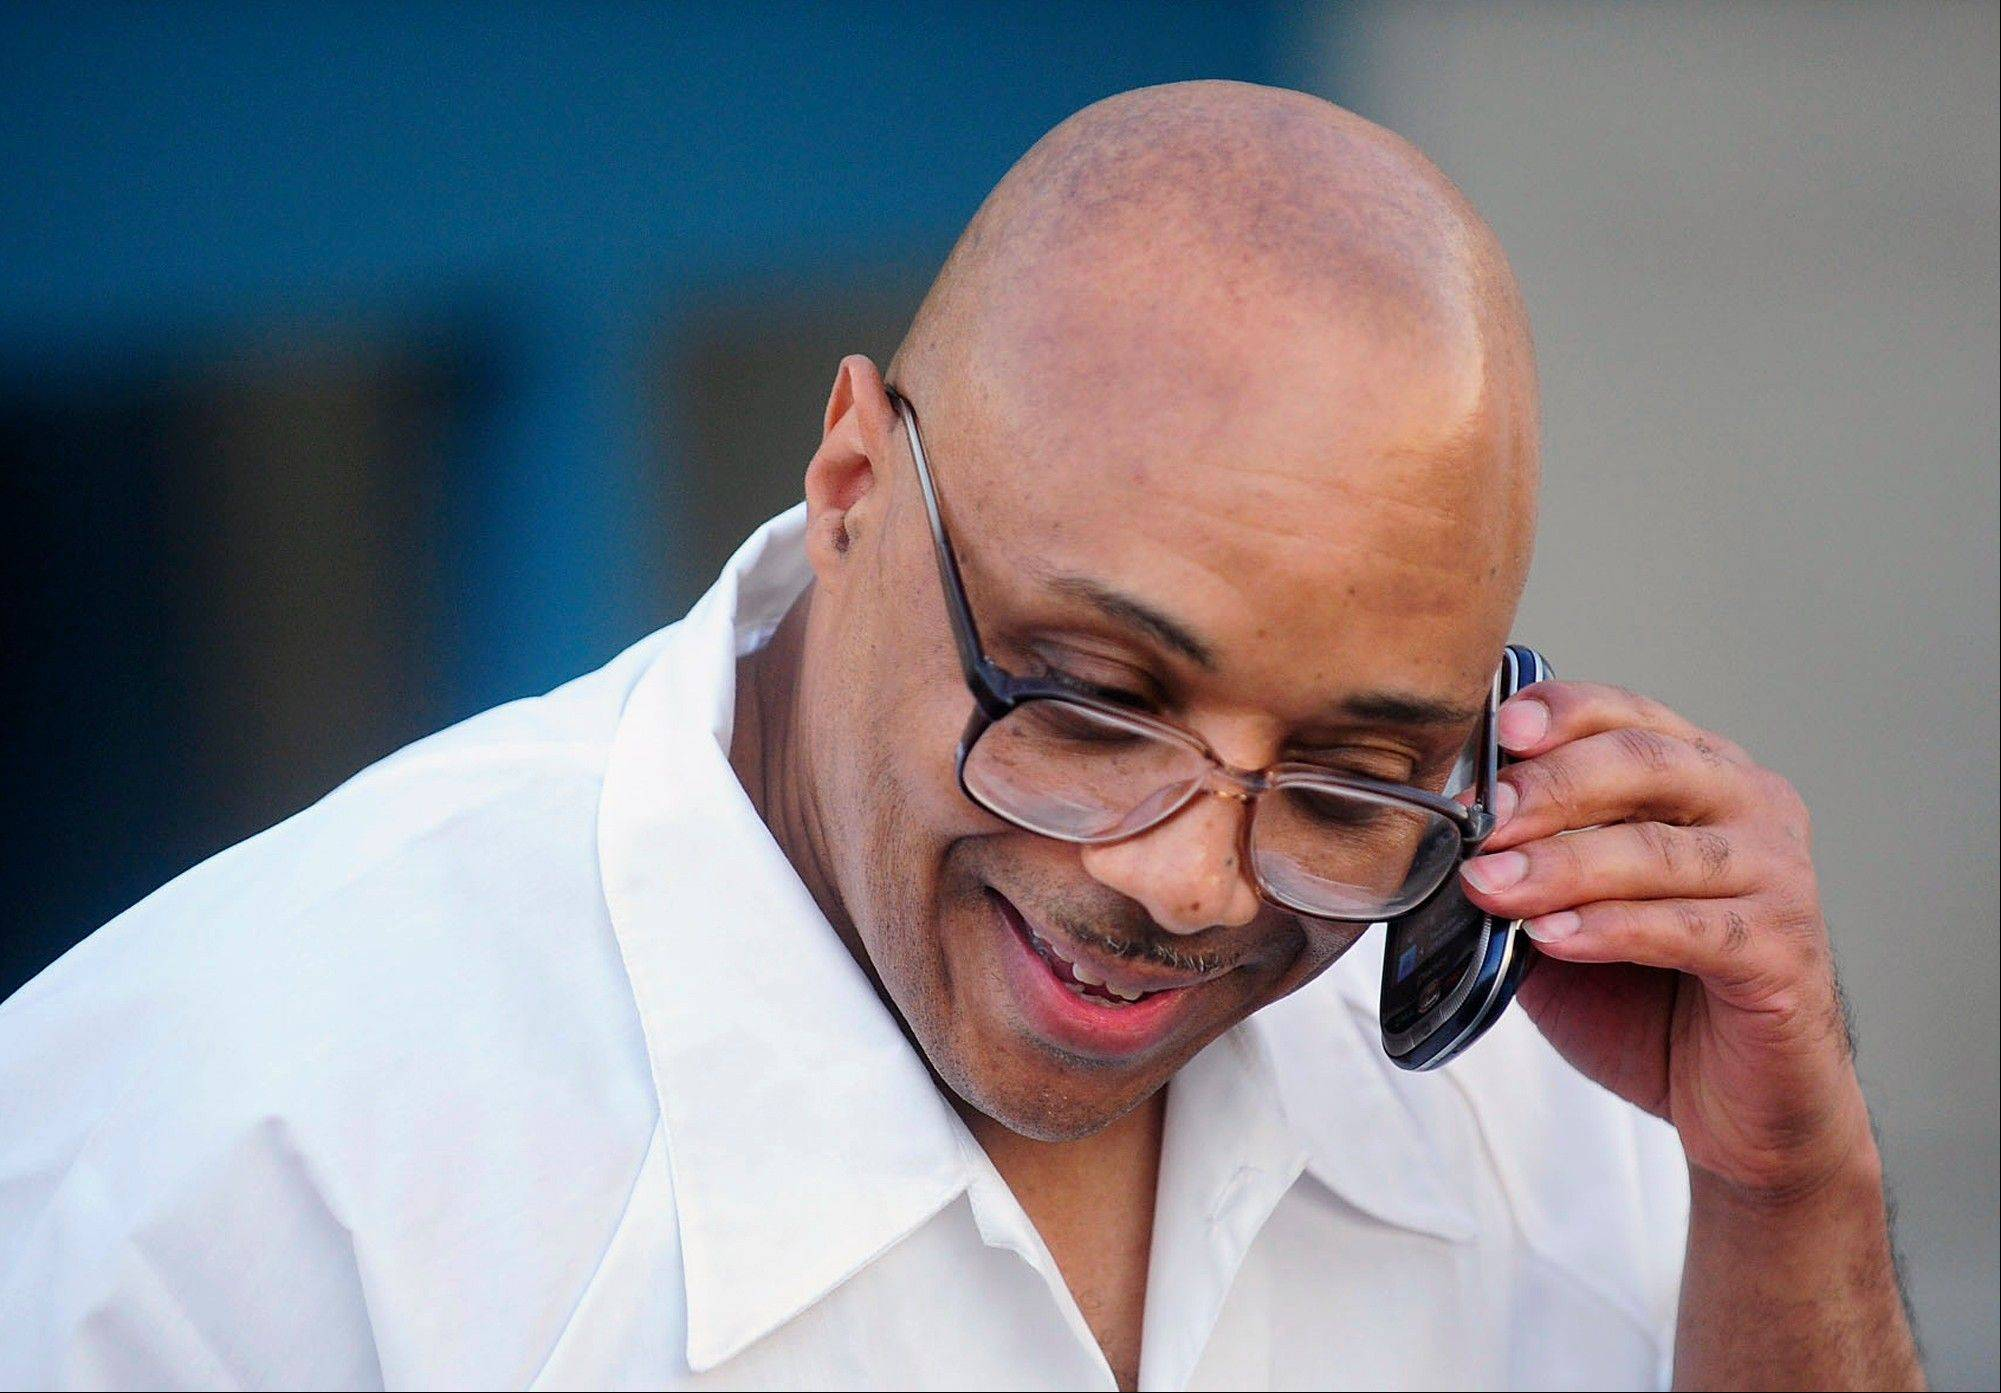 Andre Davis speaks with his mother on a cellphone after being released from the Tamms Correctional Center in Tamms last July. DNA evidence helped overturn his 1980 conviction in the rape and murder of a 3-year-old girl.